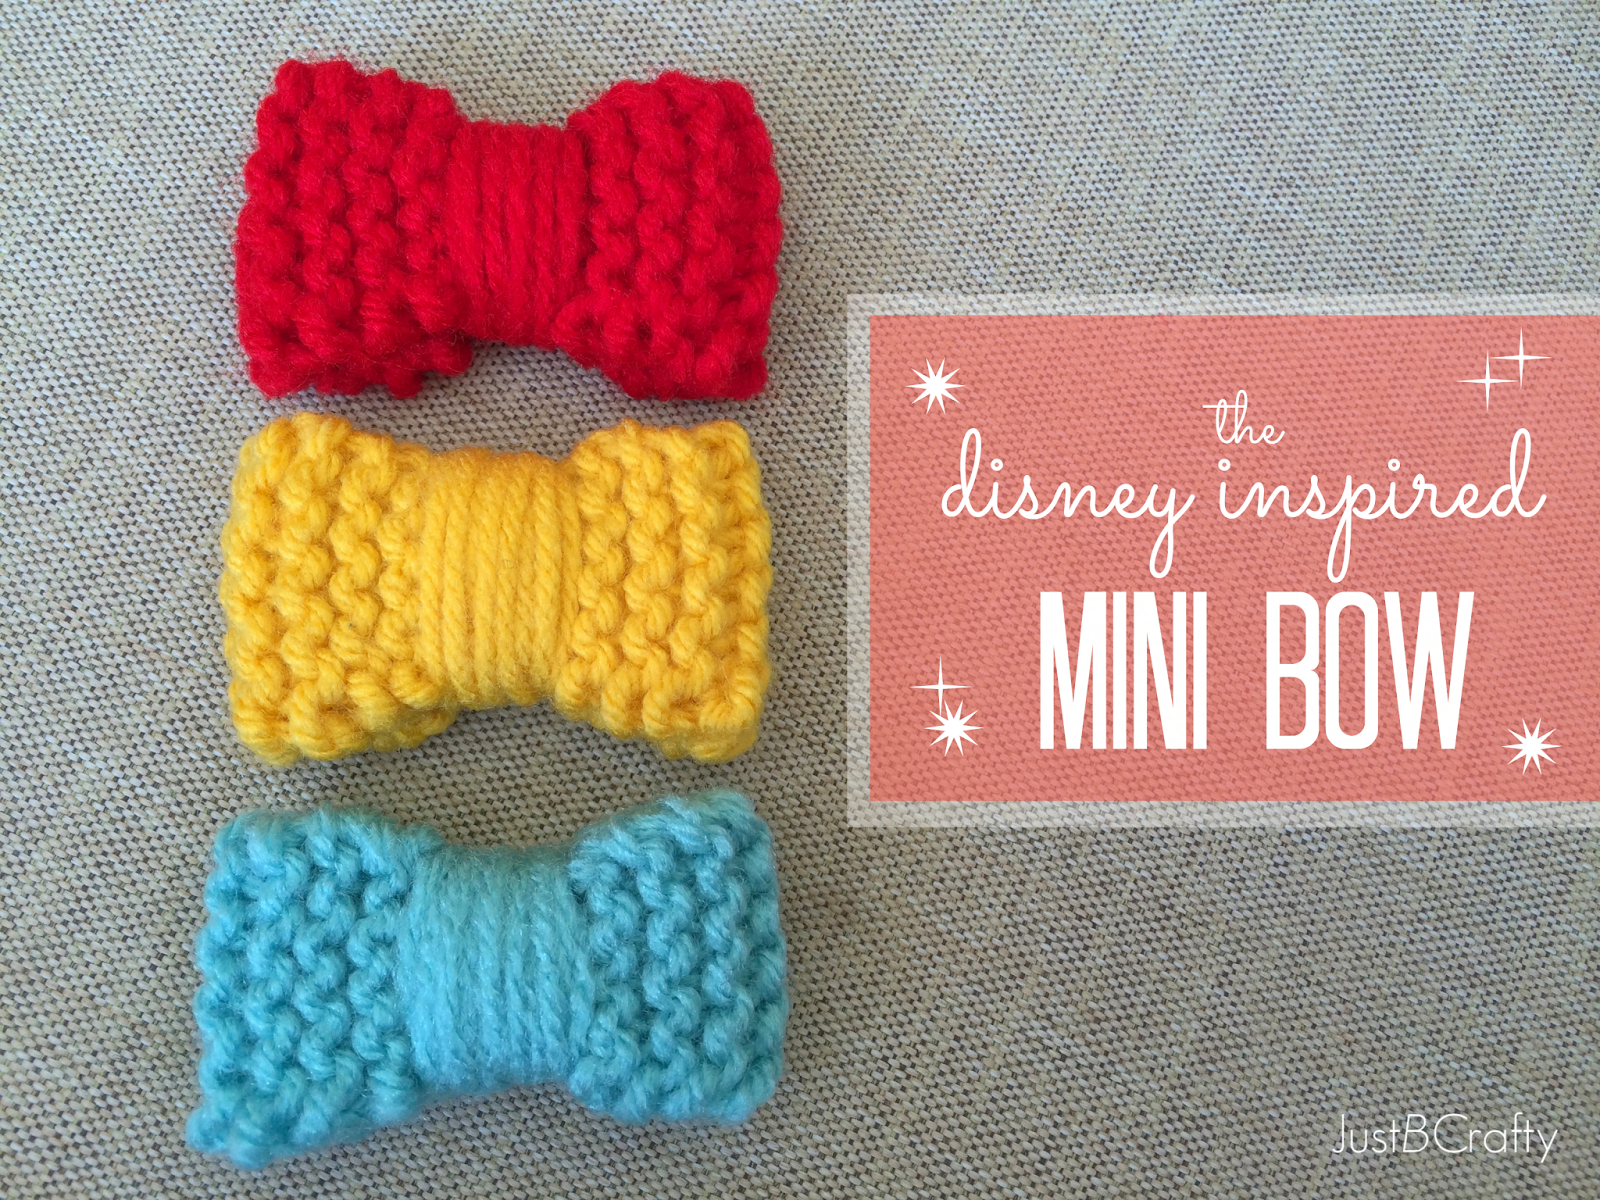 The Disney Inspired Knit Mini Bow